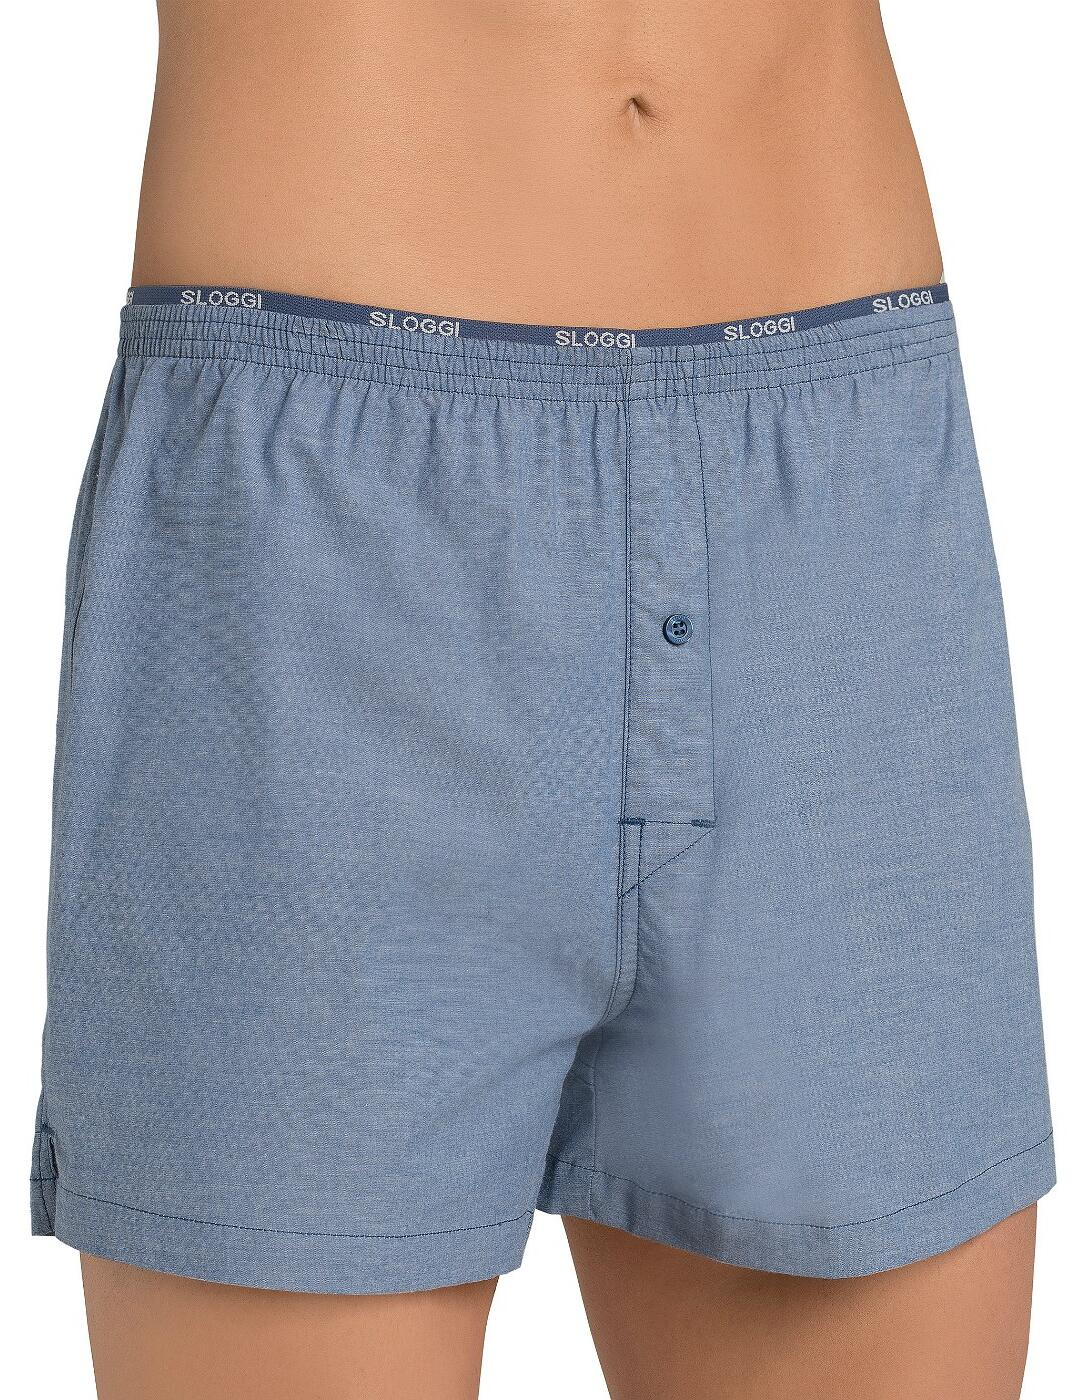 10154631 Sloggi Men Freedom Stretch Boxer Short - 10154631 Midnight Blue